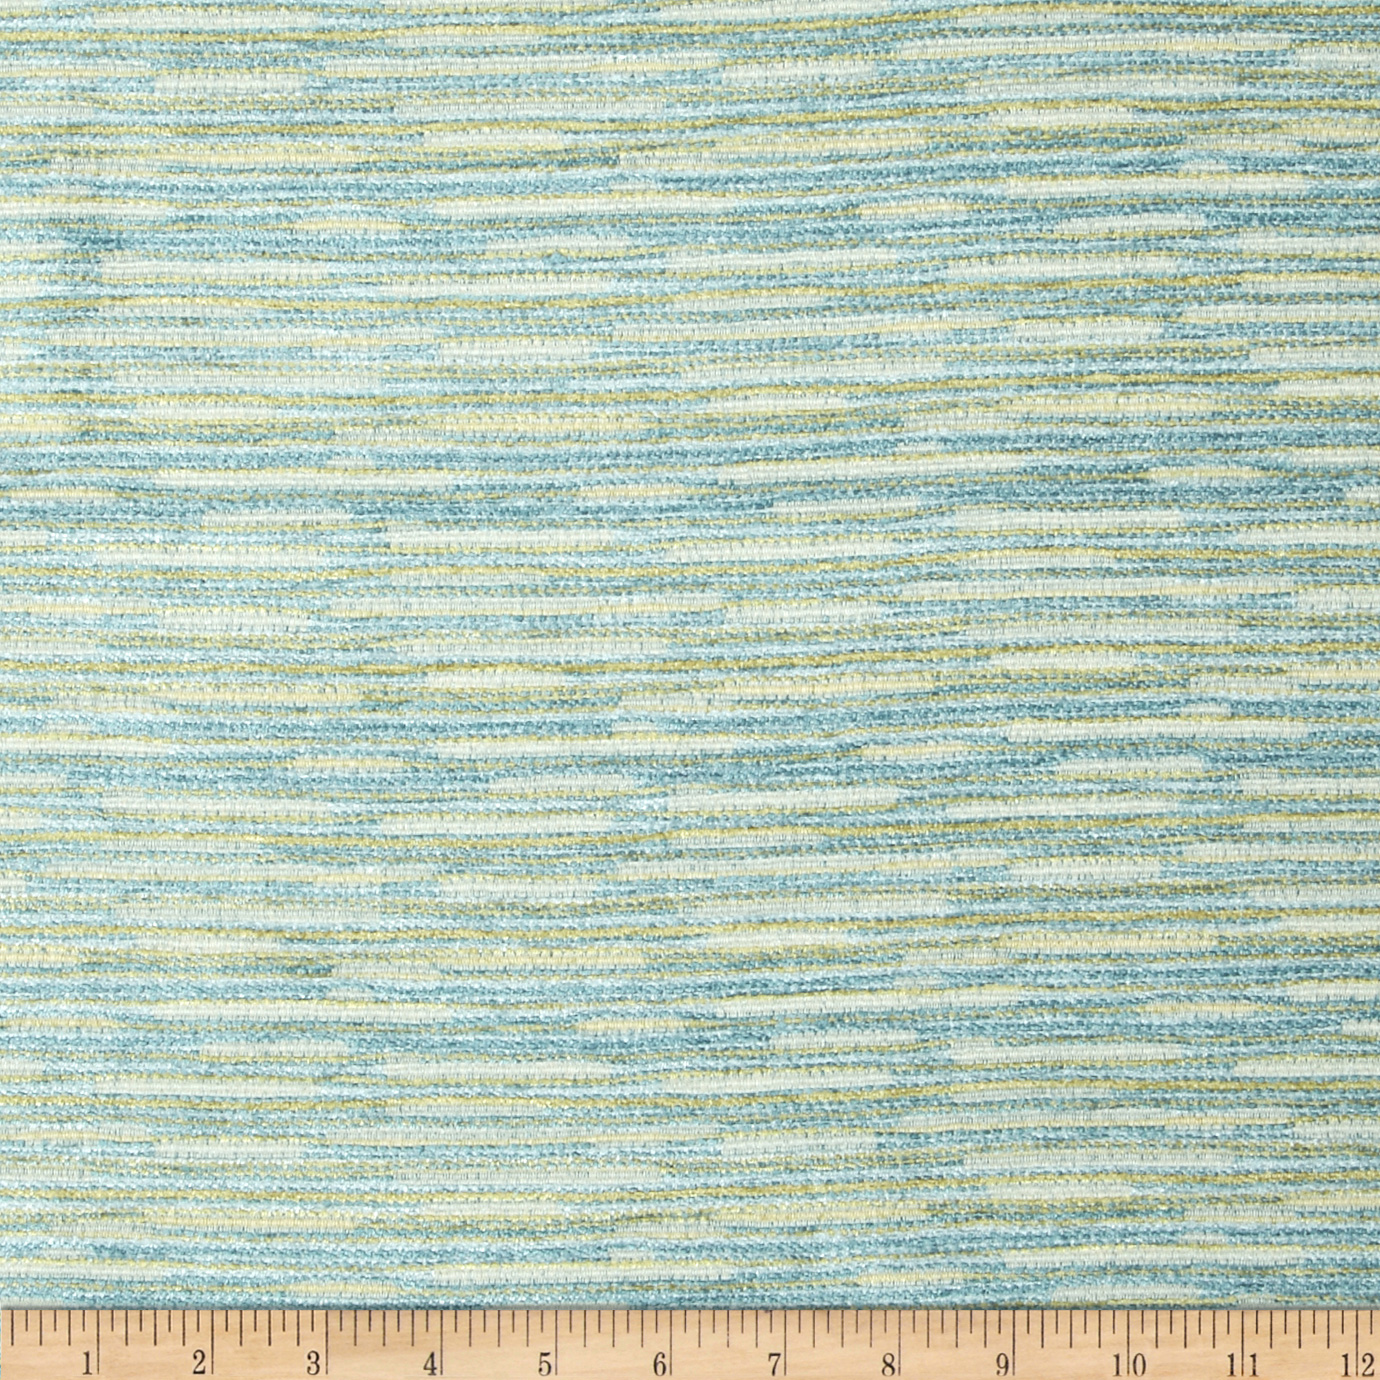 Tempo Double Color Chenille Chic Peacock Fabric by Tempro in USA